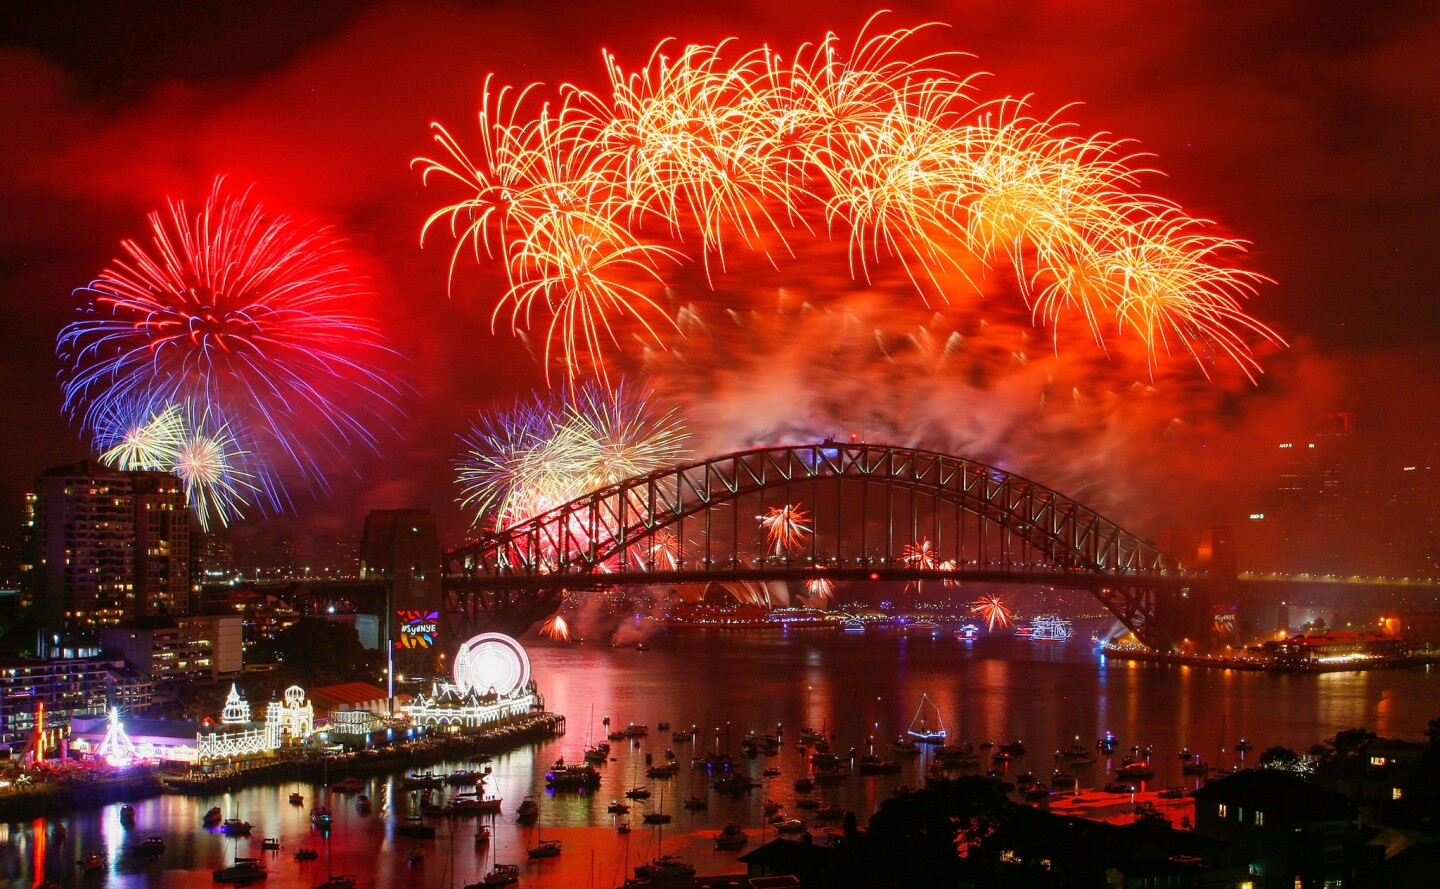 Sydney puts on a spectacular New Year's Eve show with midnight fireworks over Sydney Harbour, pictured here Jan. 1, 2018.